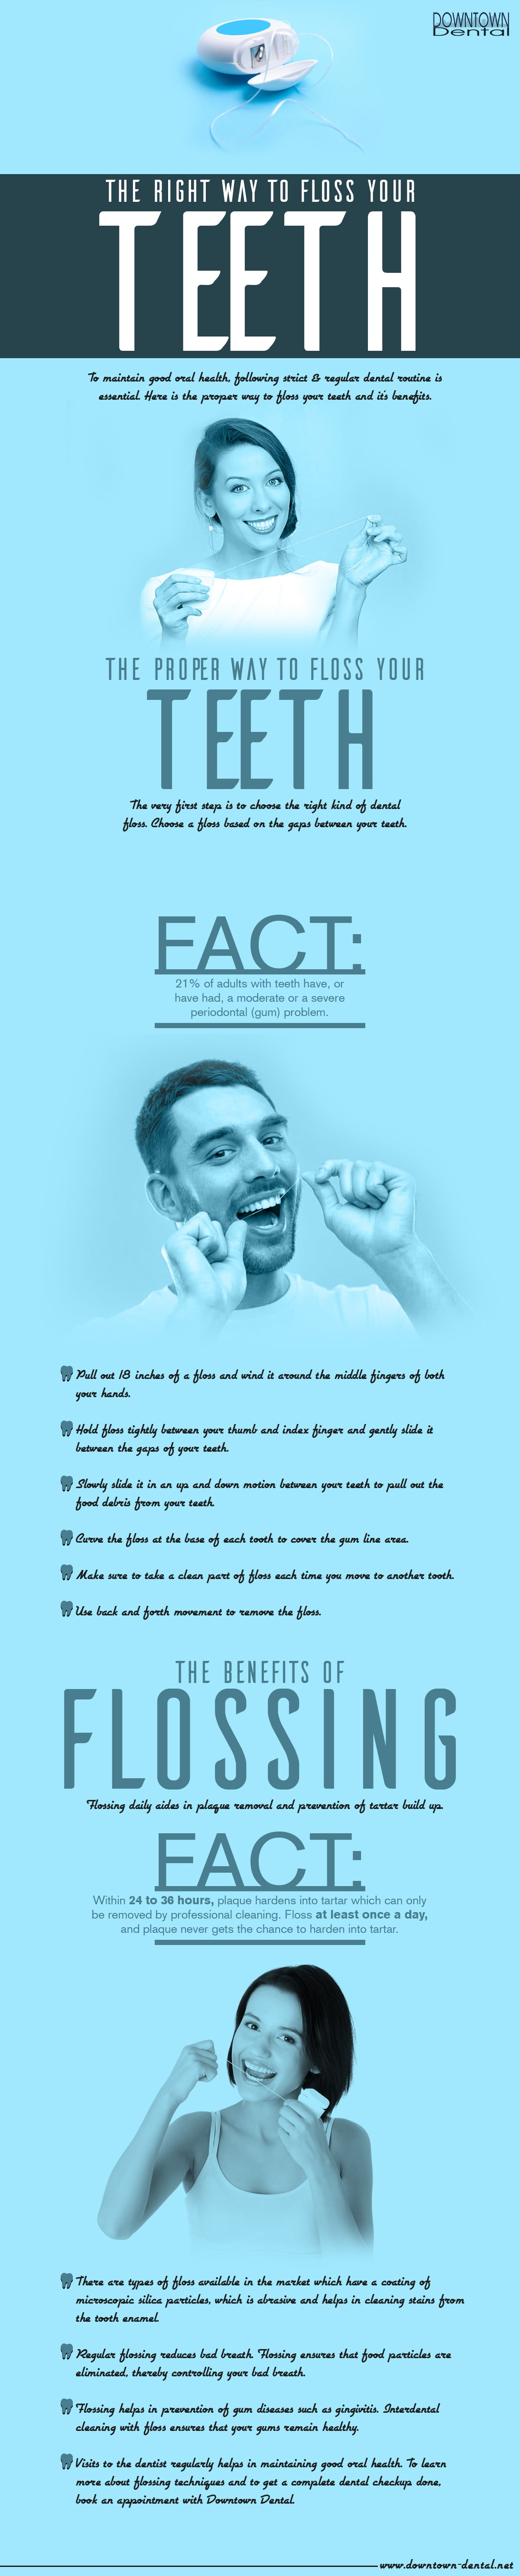 The Proper Way to Floss Your Teeth